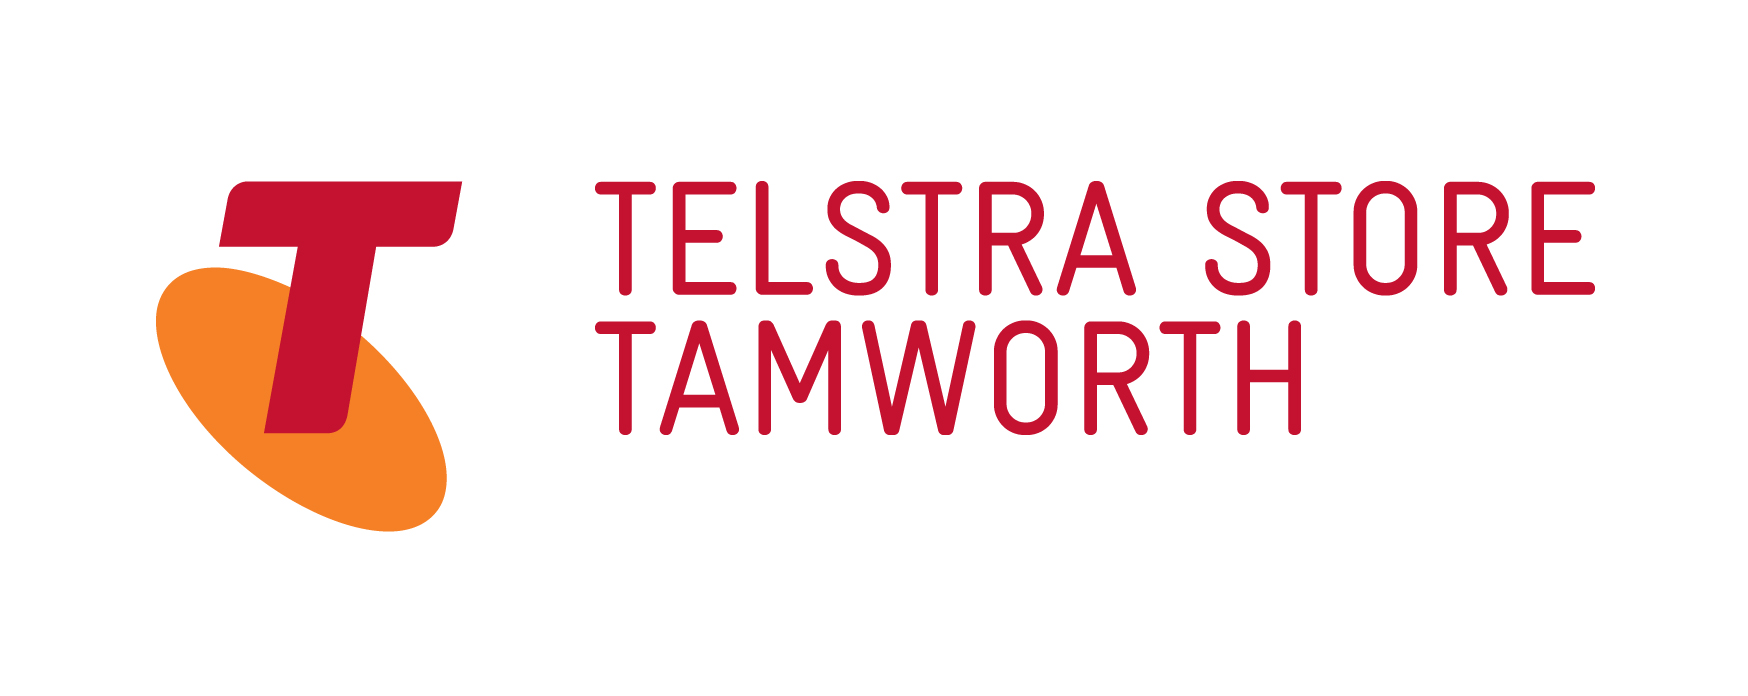 Telstra Store Tamworth